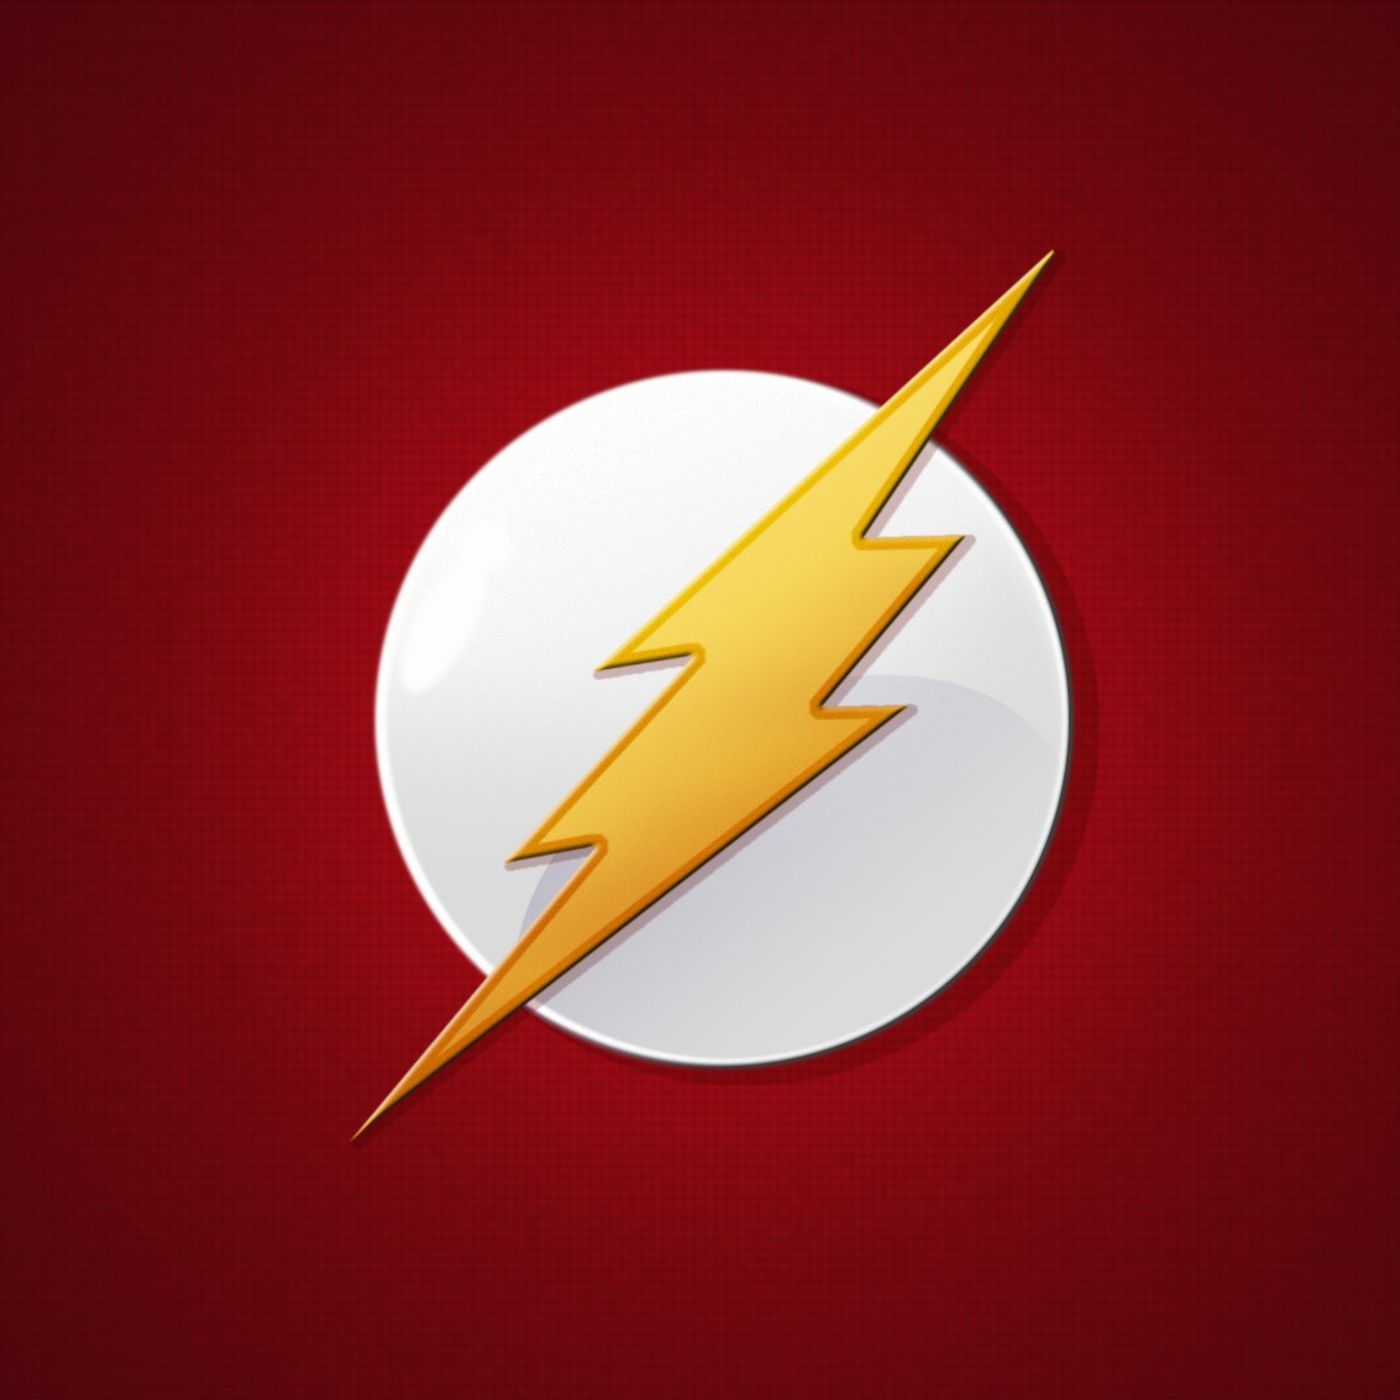 Episode 74: The Flash